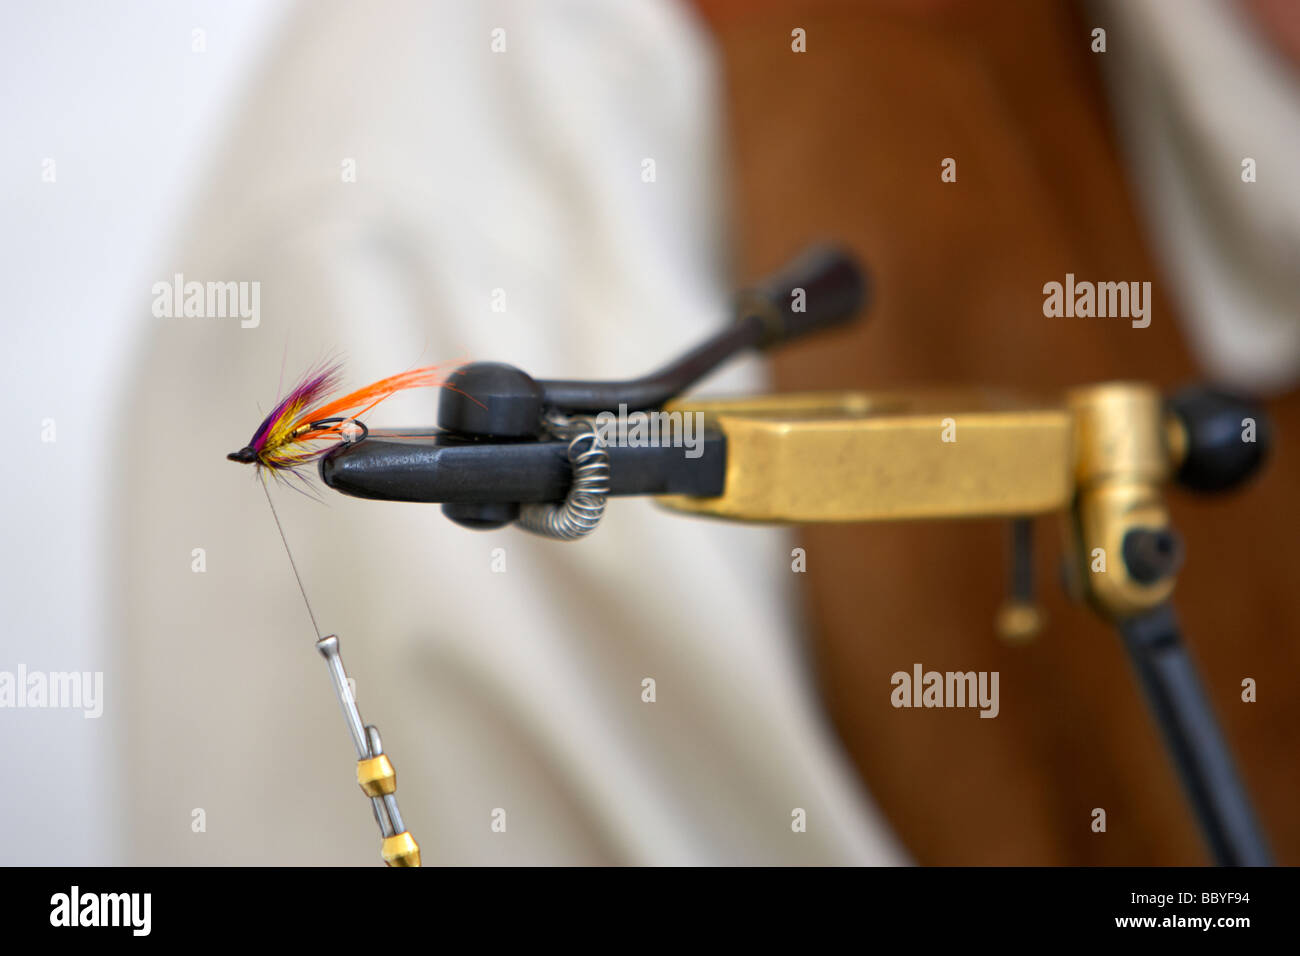 fly tying with fly in vice - Stock Image